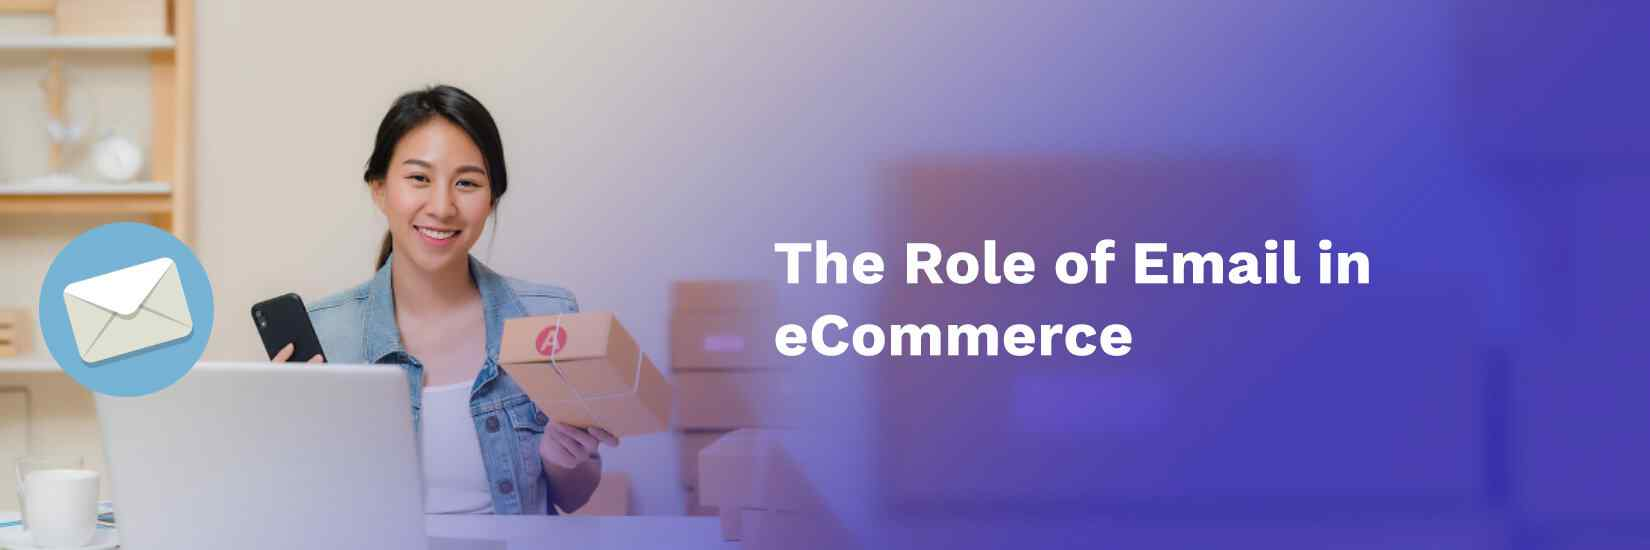 The Role of Email in eCommerce